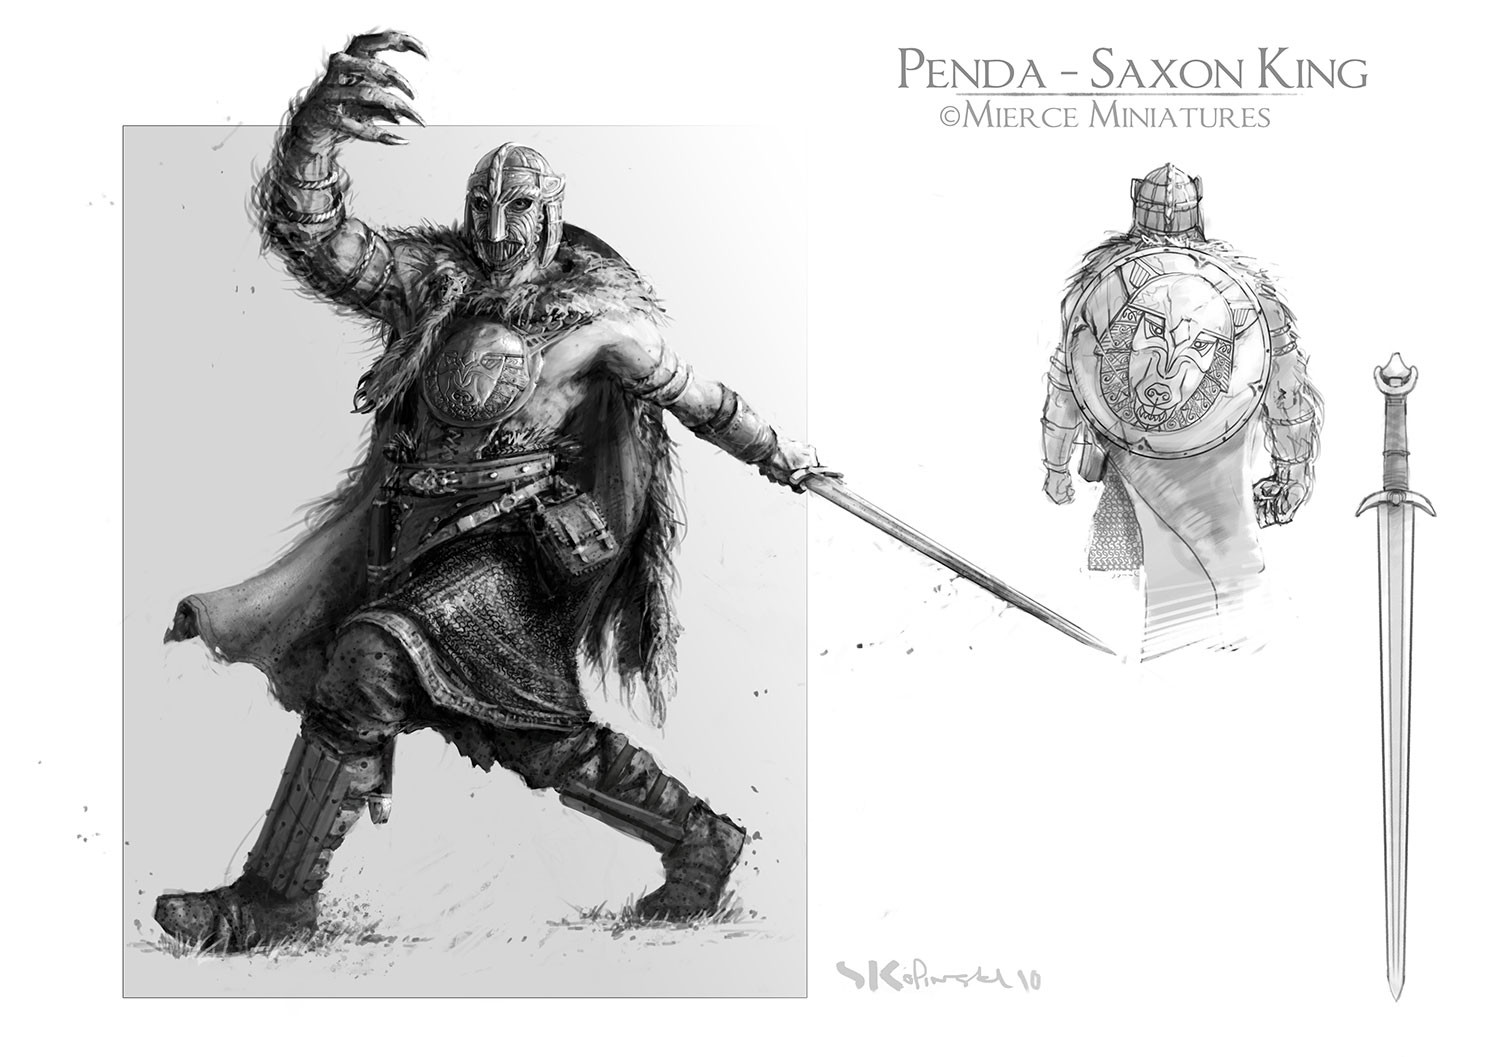 Penda - Warrior King of Mierce